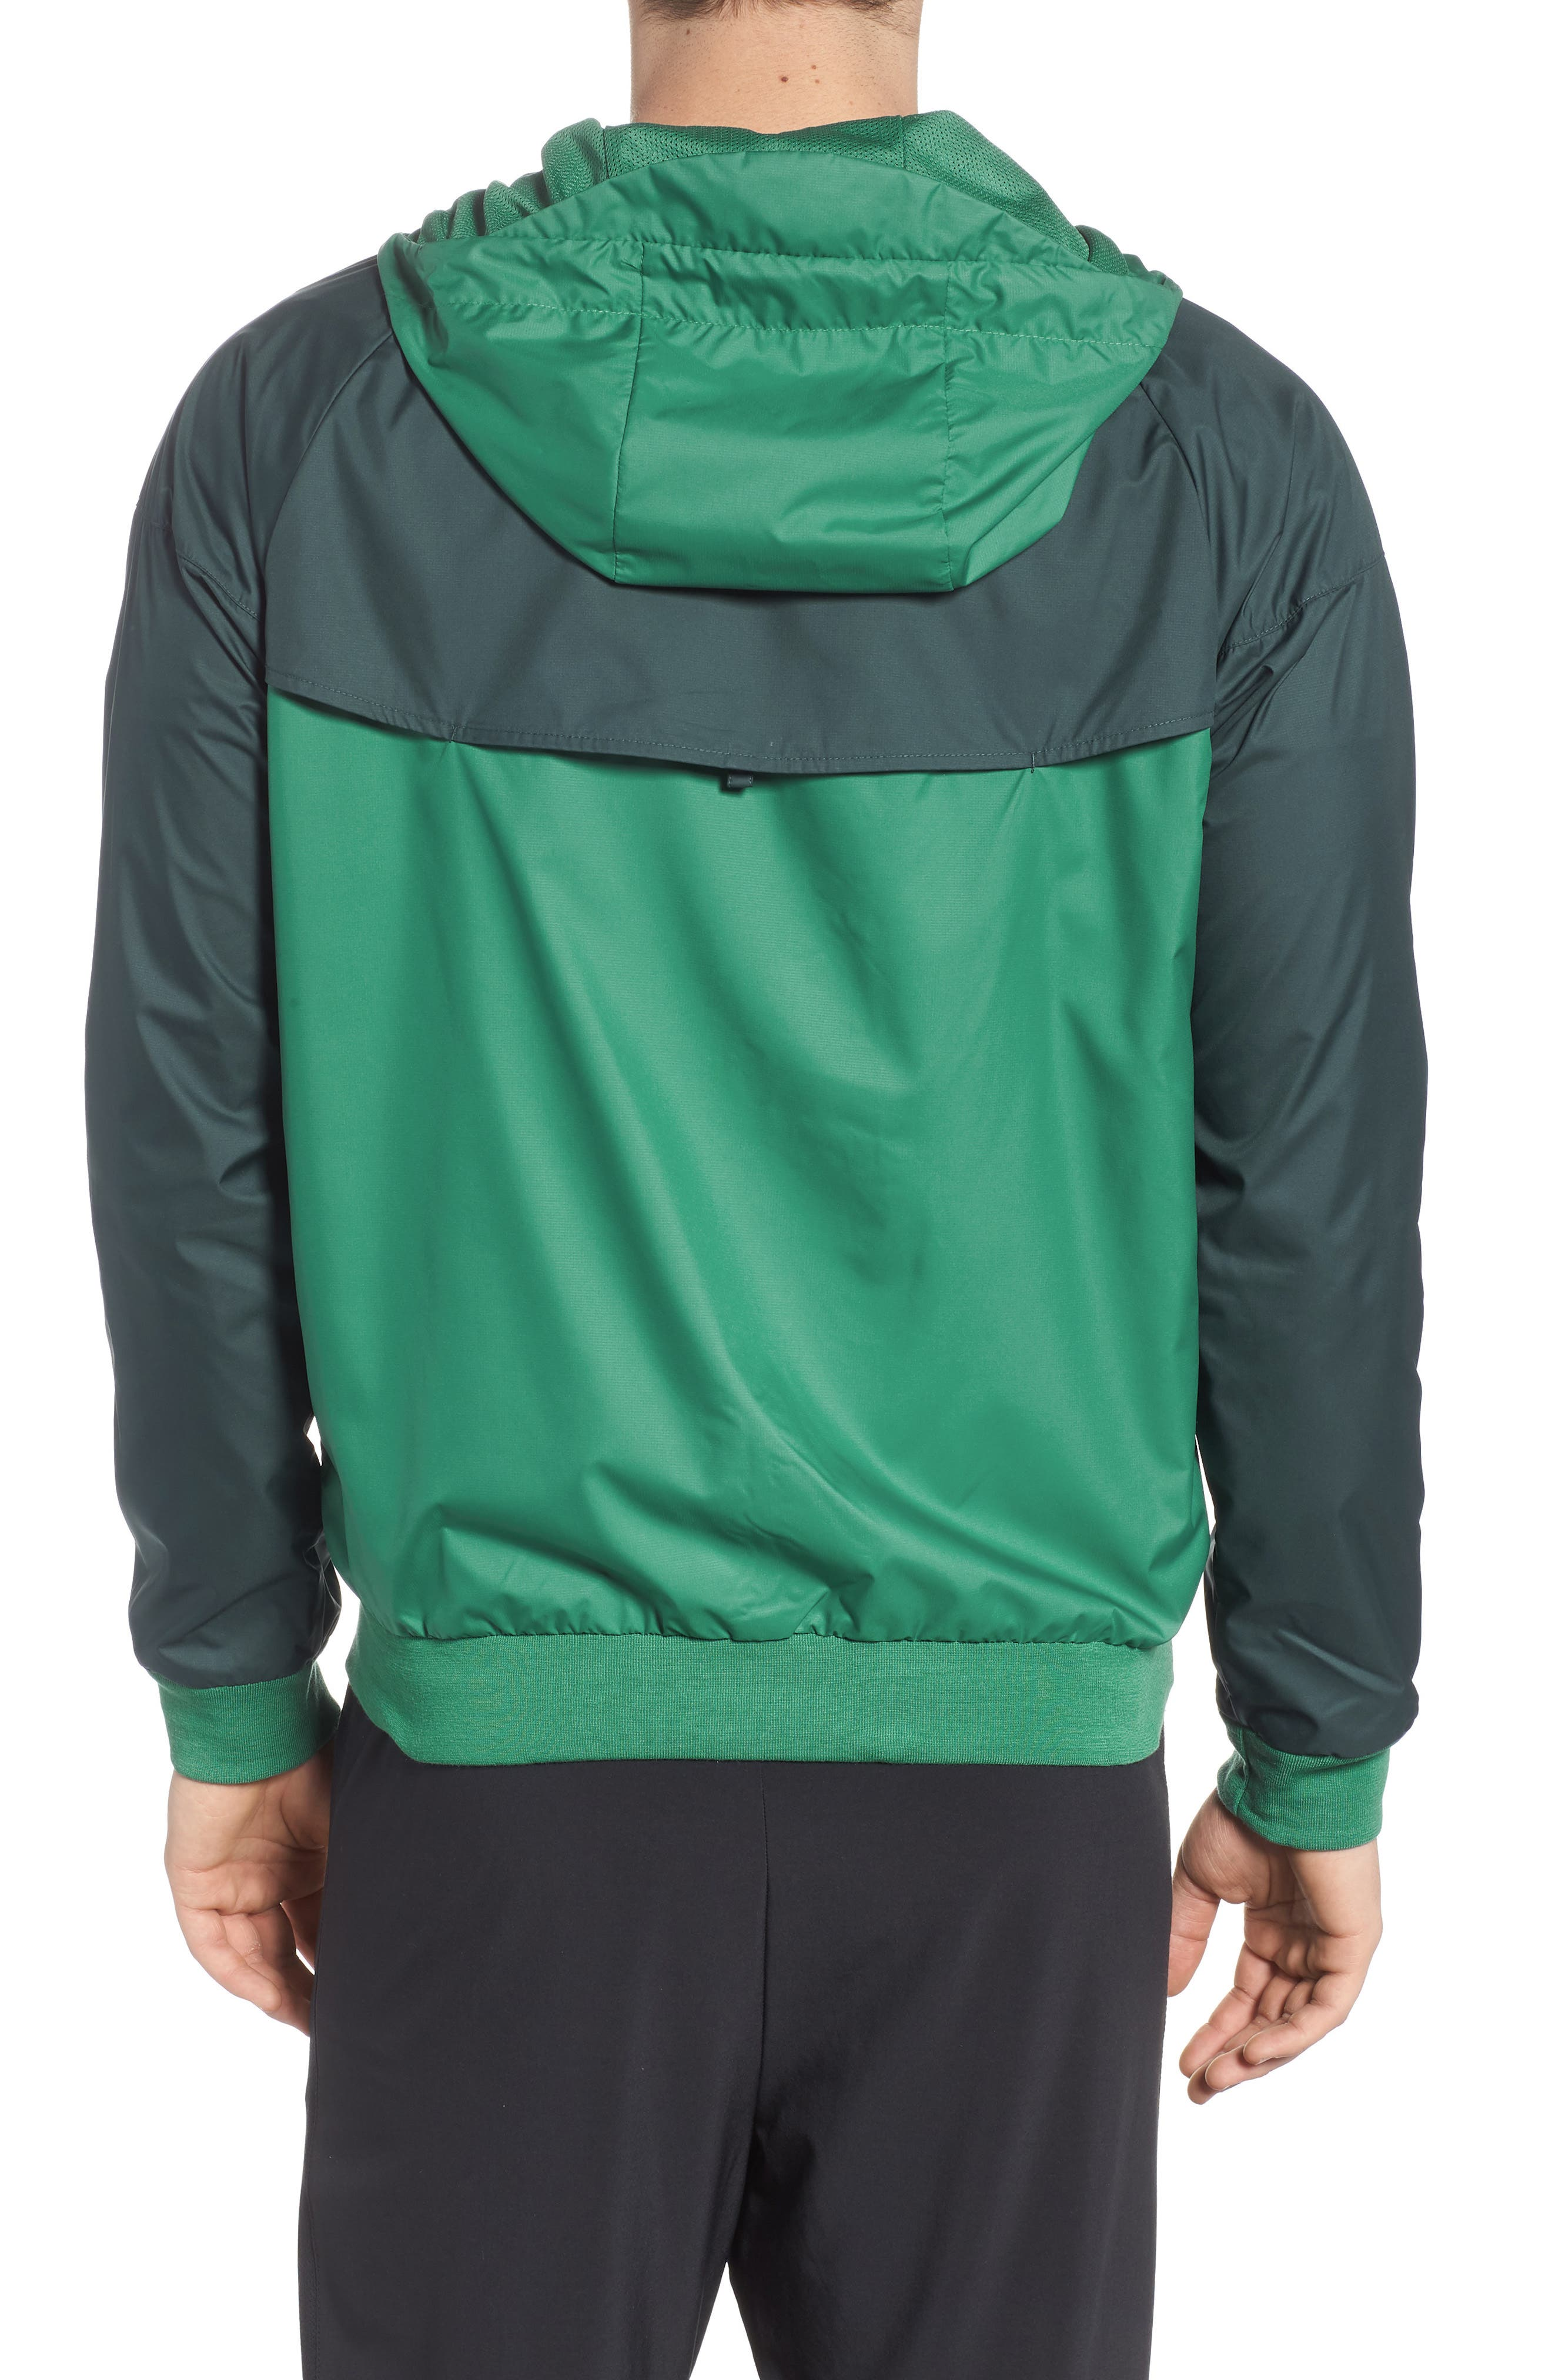 'Windrunner' Colorblock Jacket,                             Alternate thumbnail 2, color,                             Green Noise/ Deep Jungle